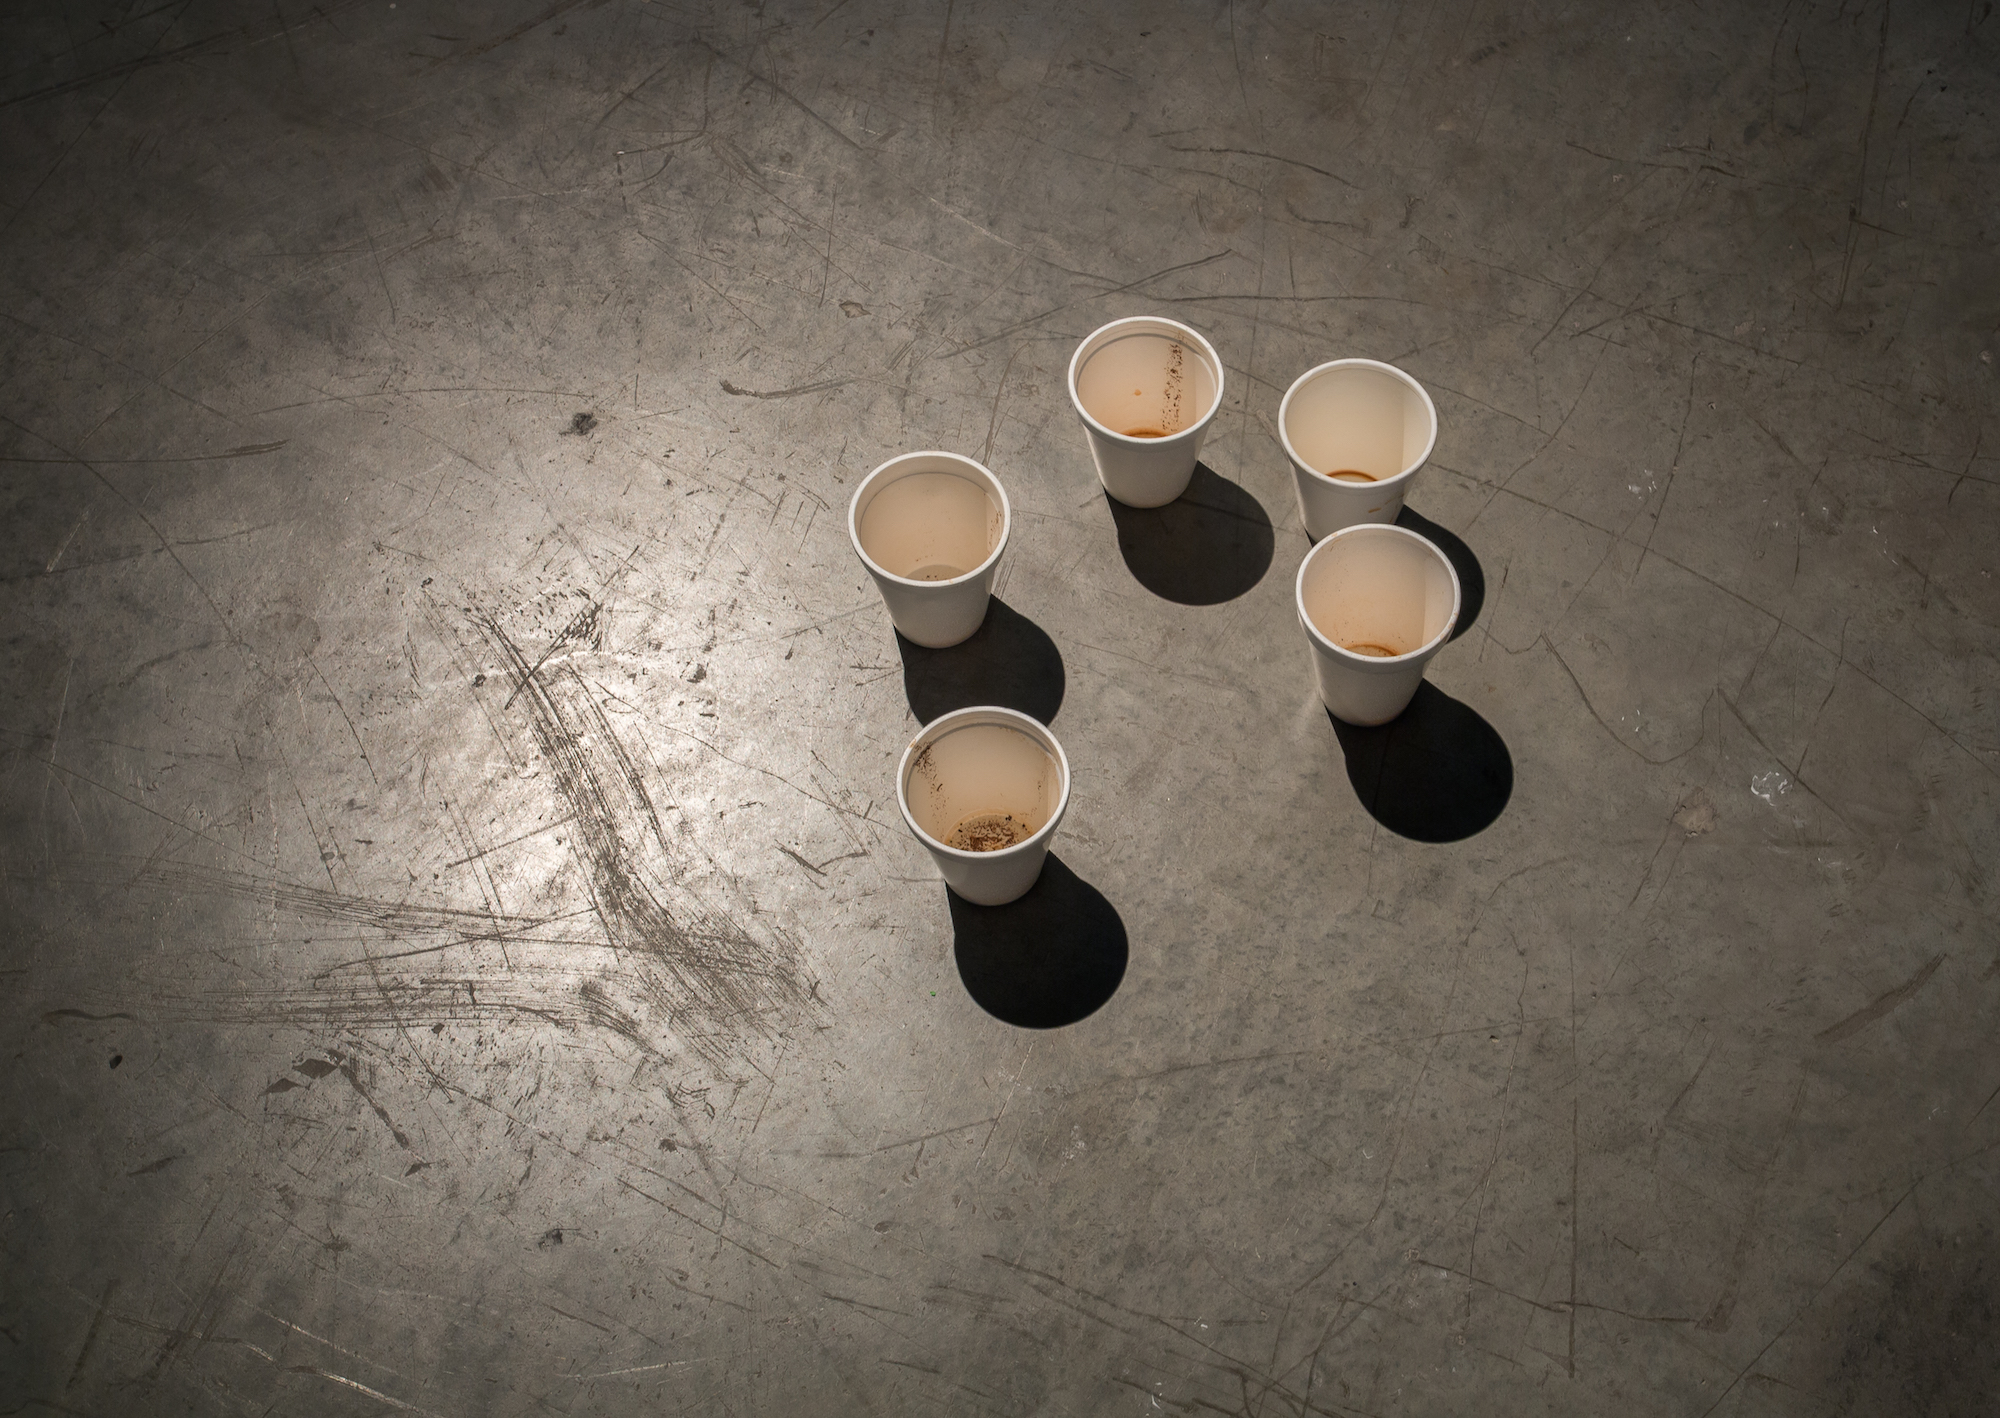 A number of styrofoam cups 2014 Variable dimensions